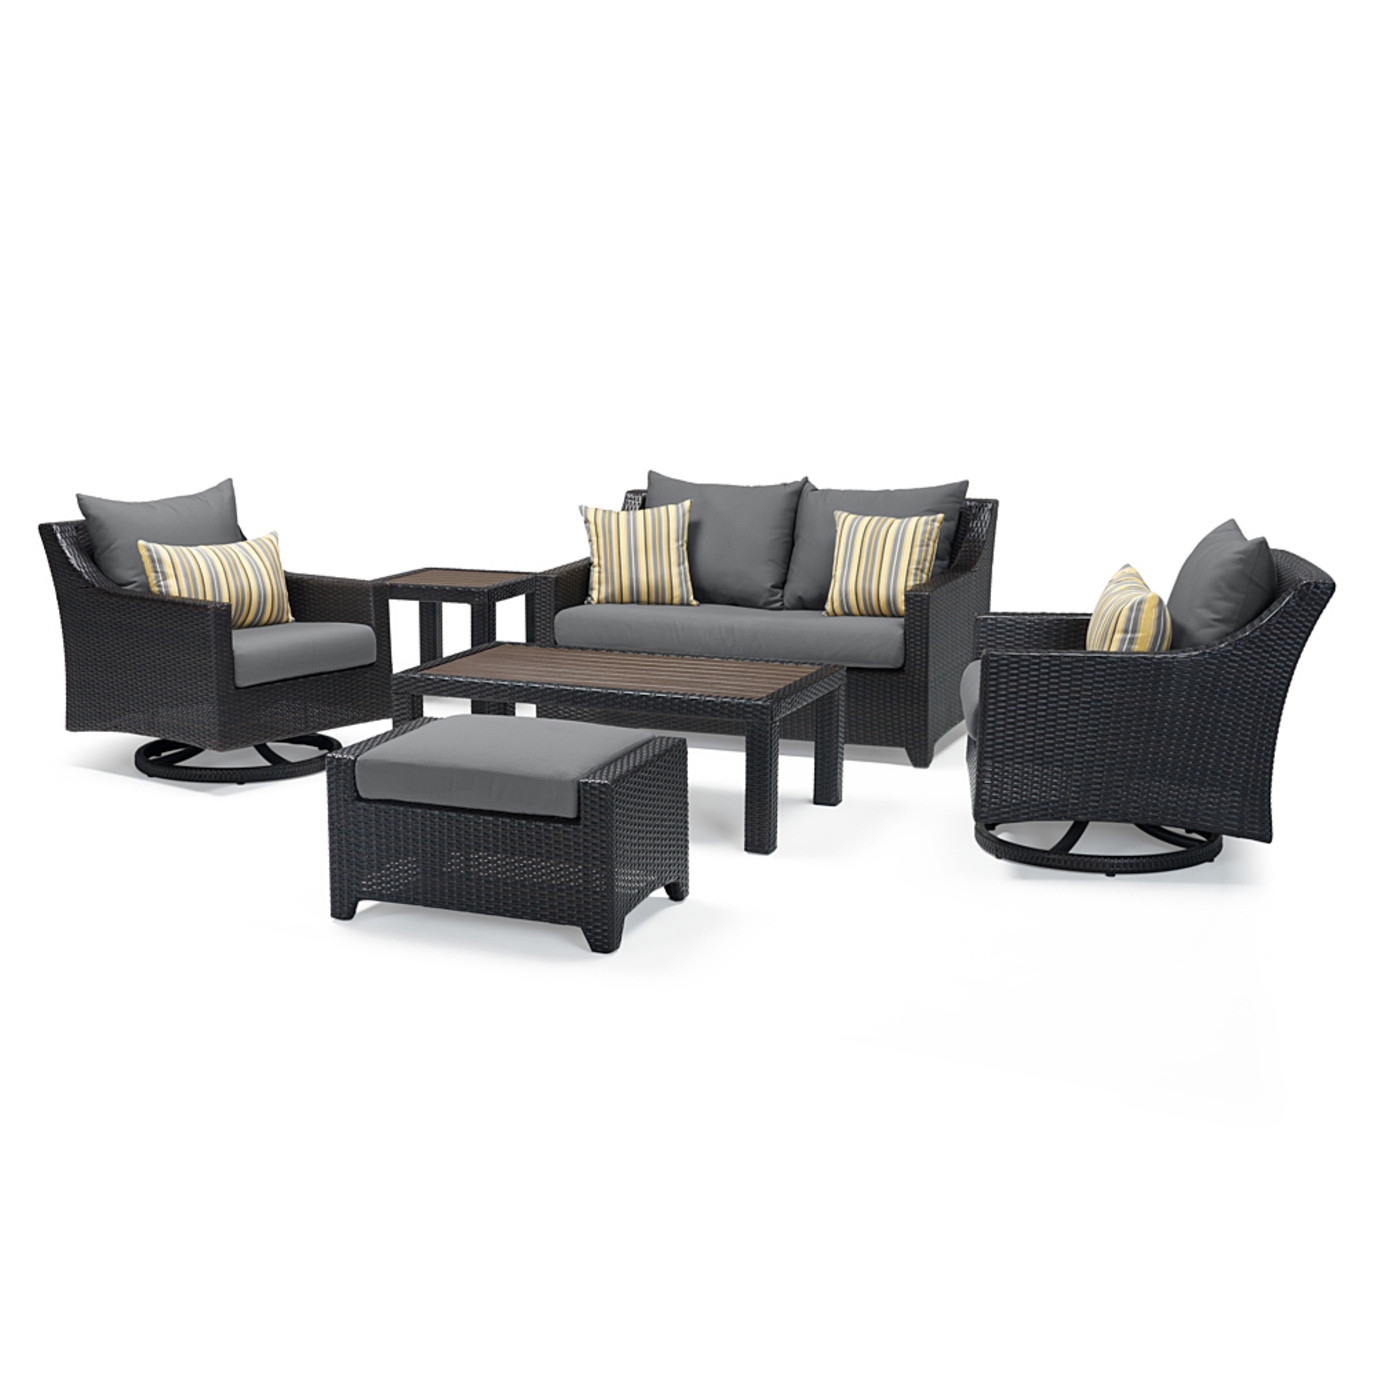 Deco Deluxe 6pc Love & Motion Club Seating Set - Charcoal Gray